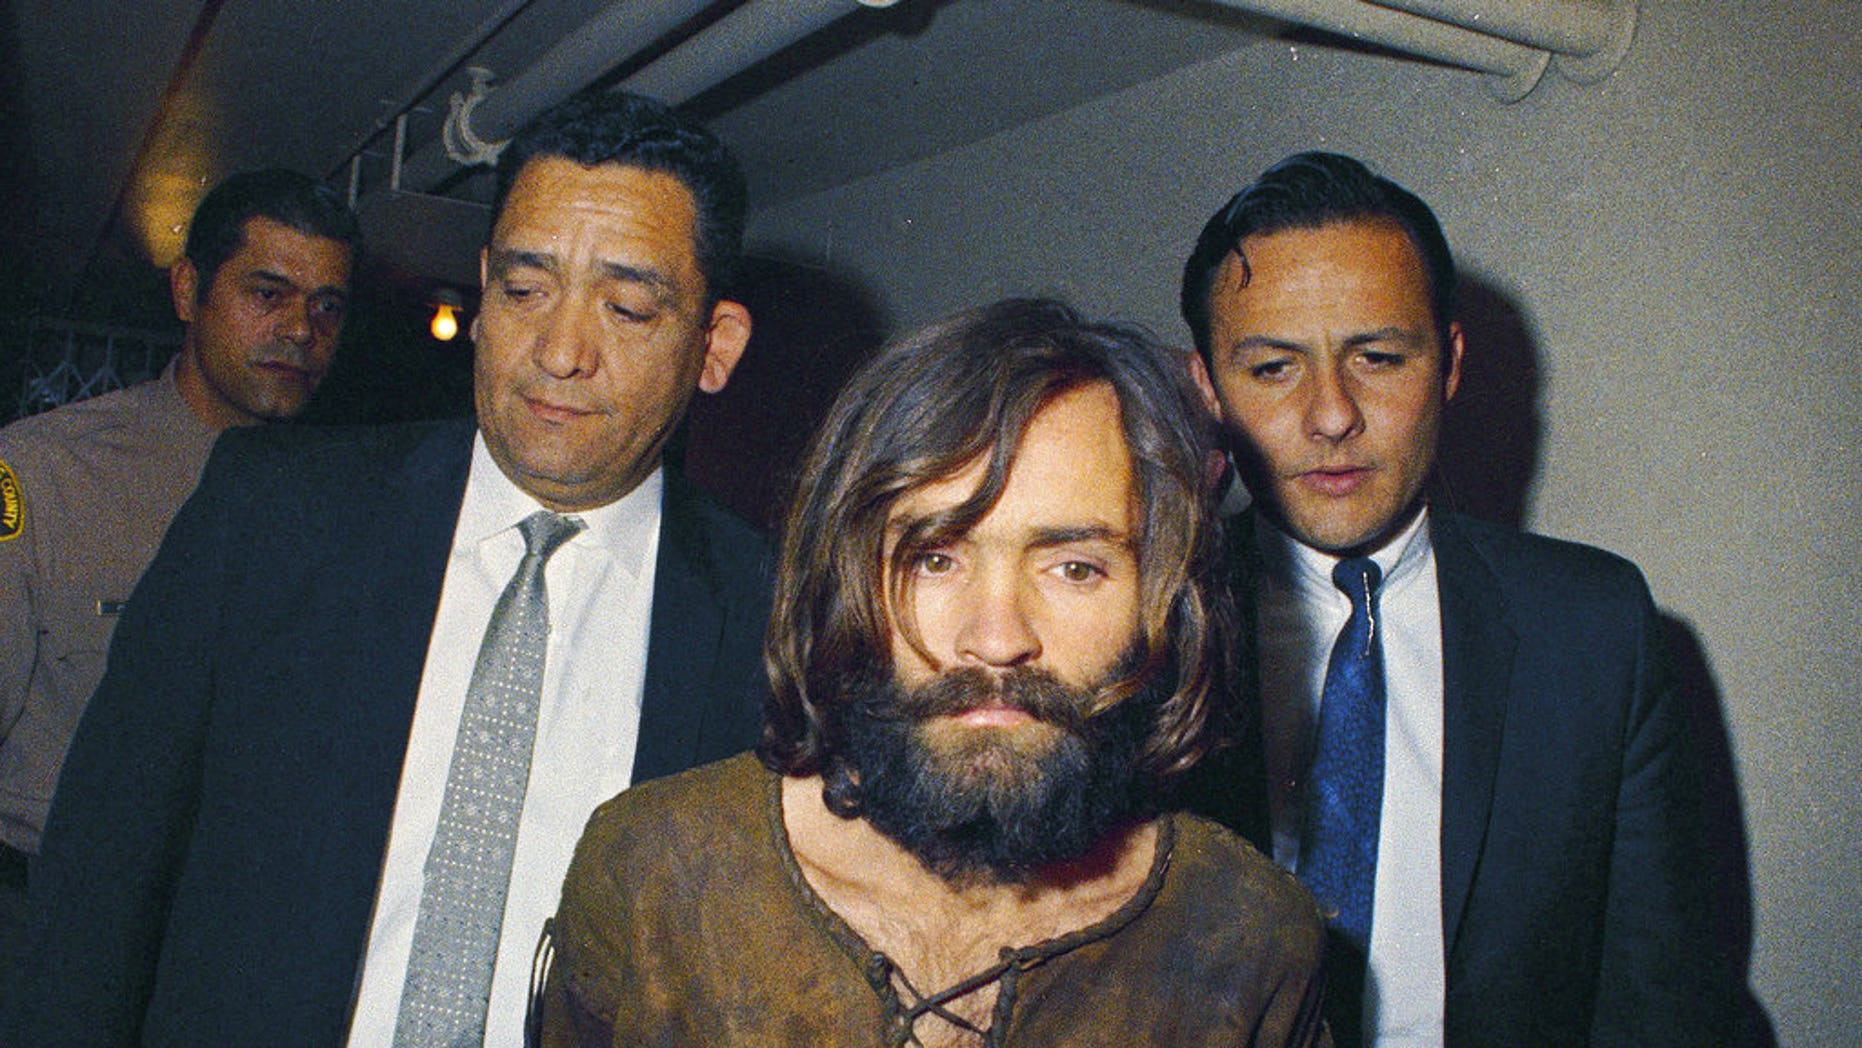 A variety of parties have claimed the rights to killer mastermind Charles Manson's body, local officials said.